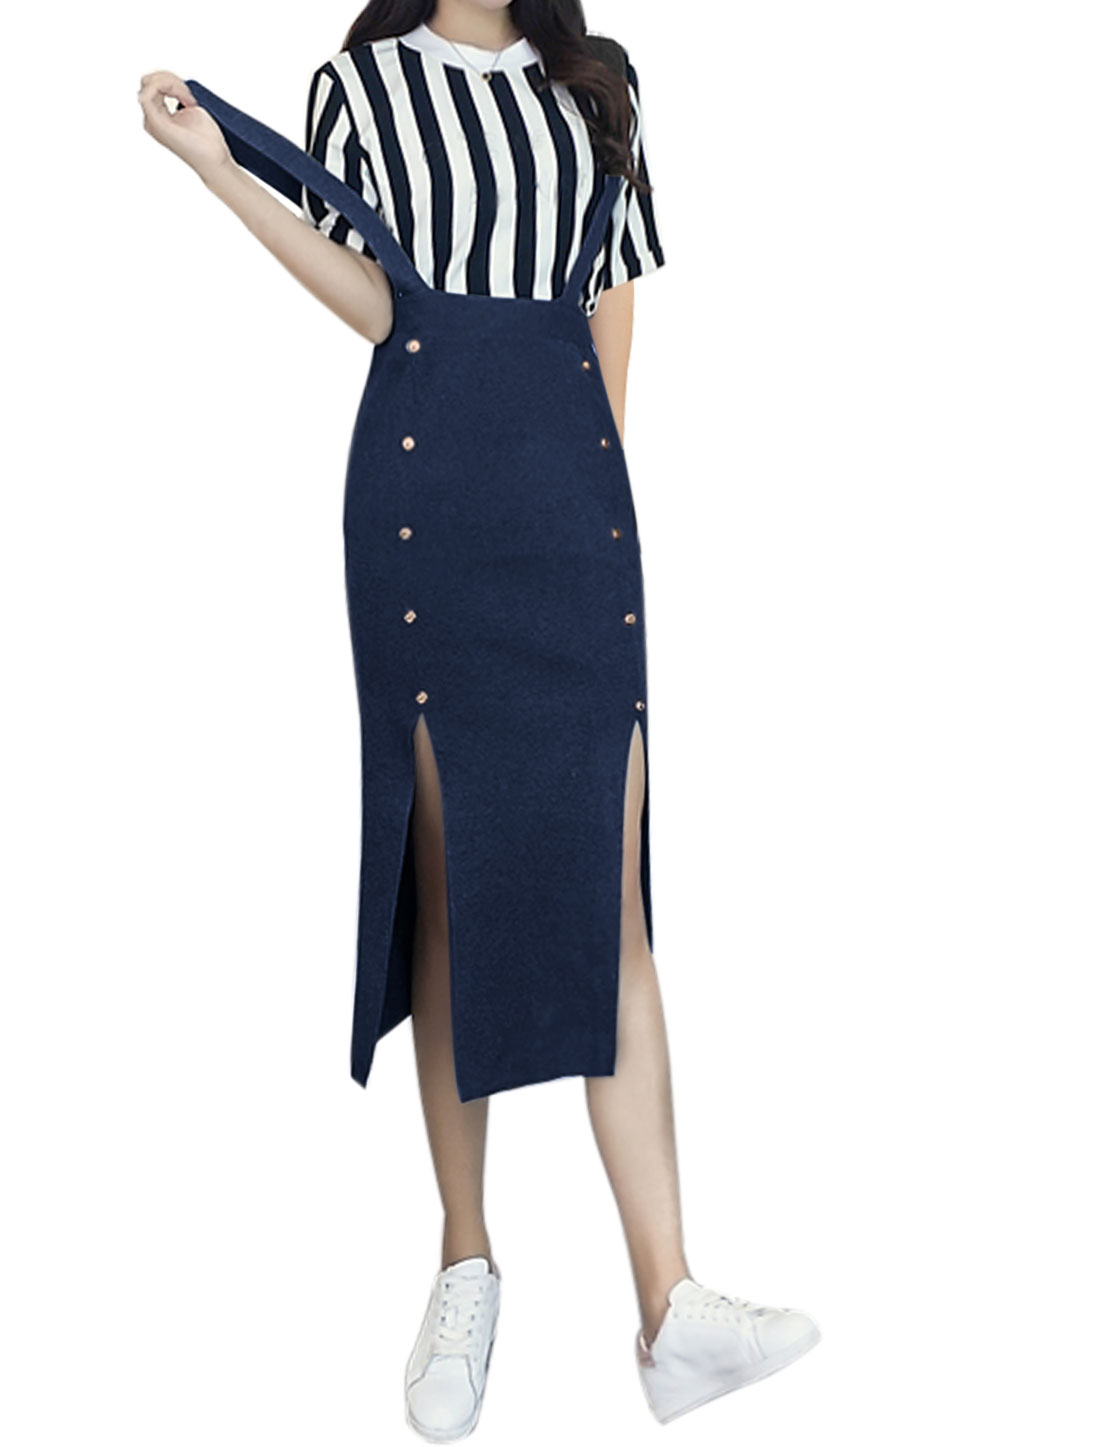 Women Button Decor Double Slits Front Below Knee Knit Suspender Skirt Blue XS